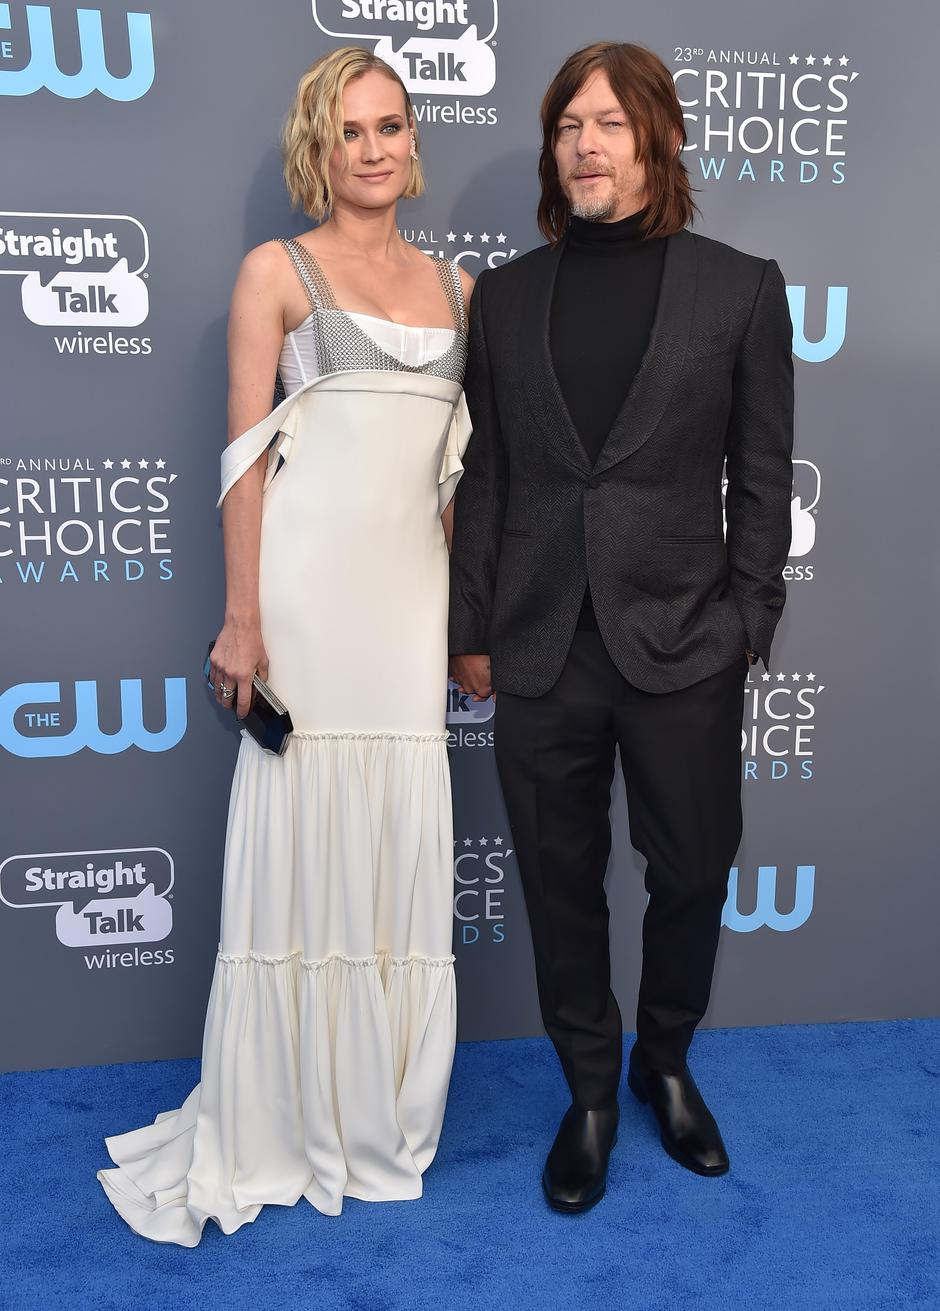 23rd Annual Critics' Choice Awards - Arrivals - Los Angeles | Autor: O'Connor/Press Association/PIXSELL